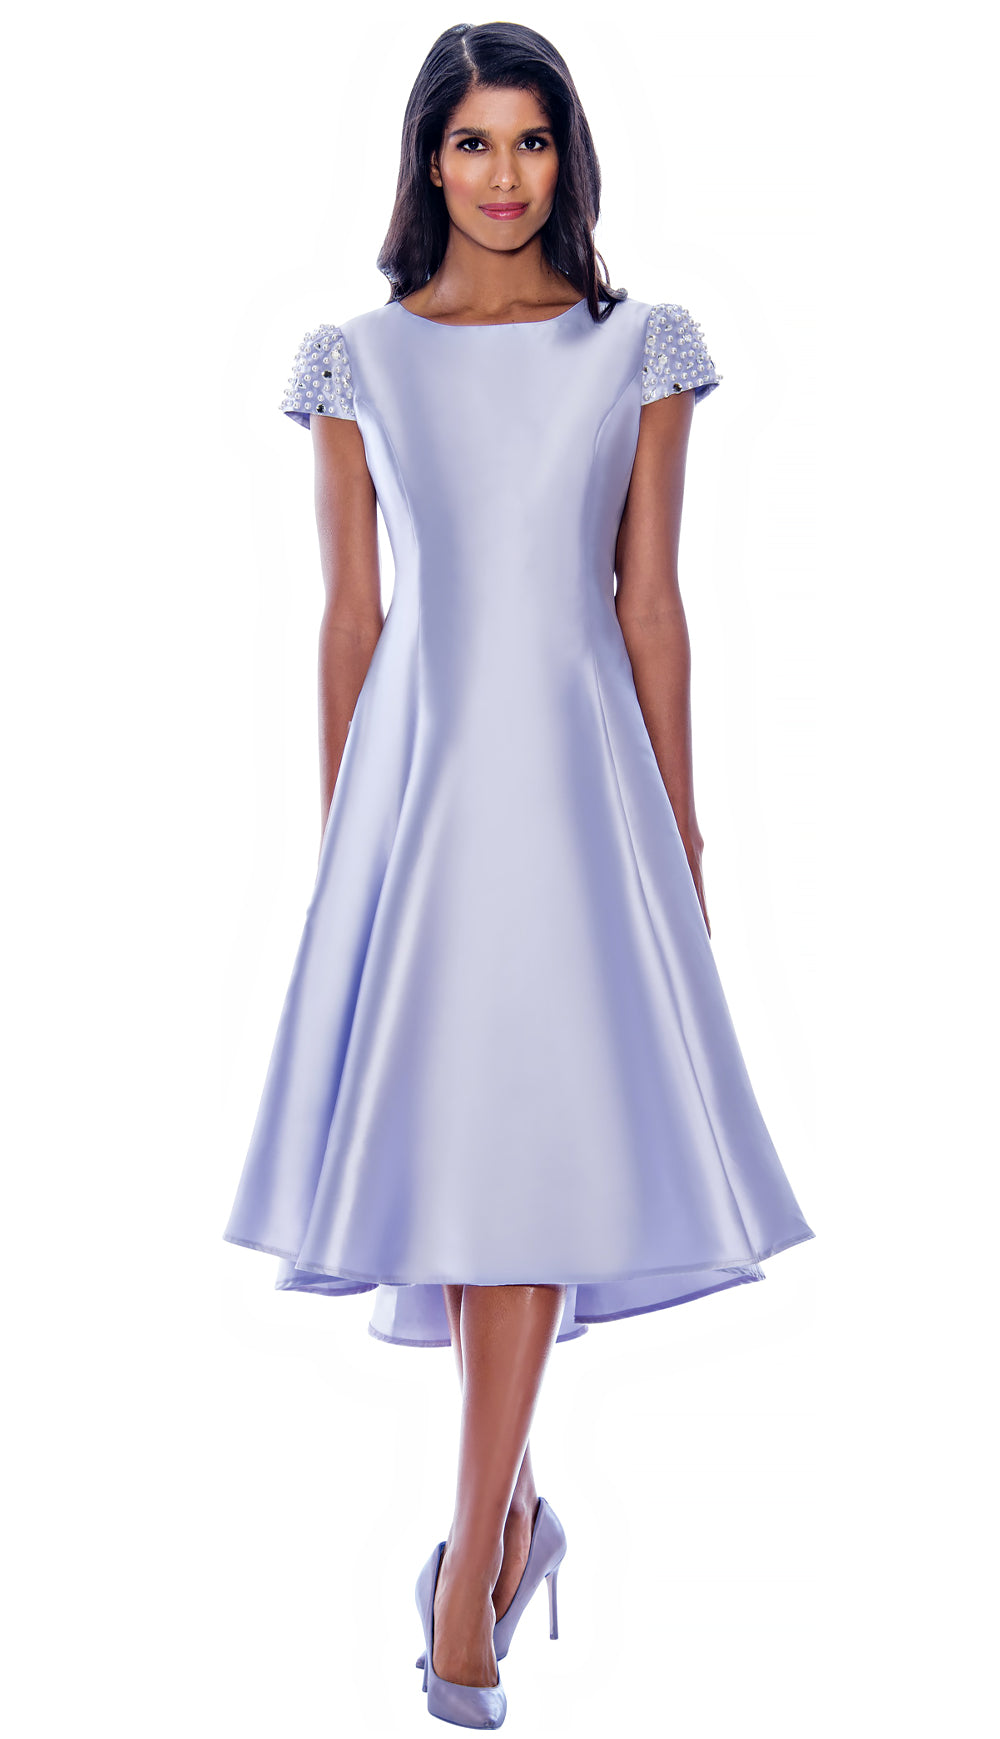 Nubiano Dress 2001-Lavender - Church Suits For Less